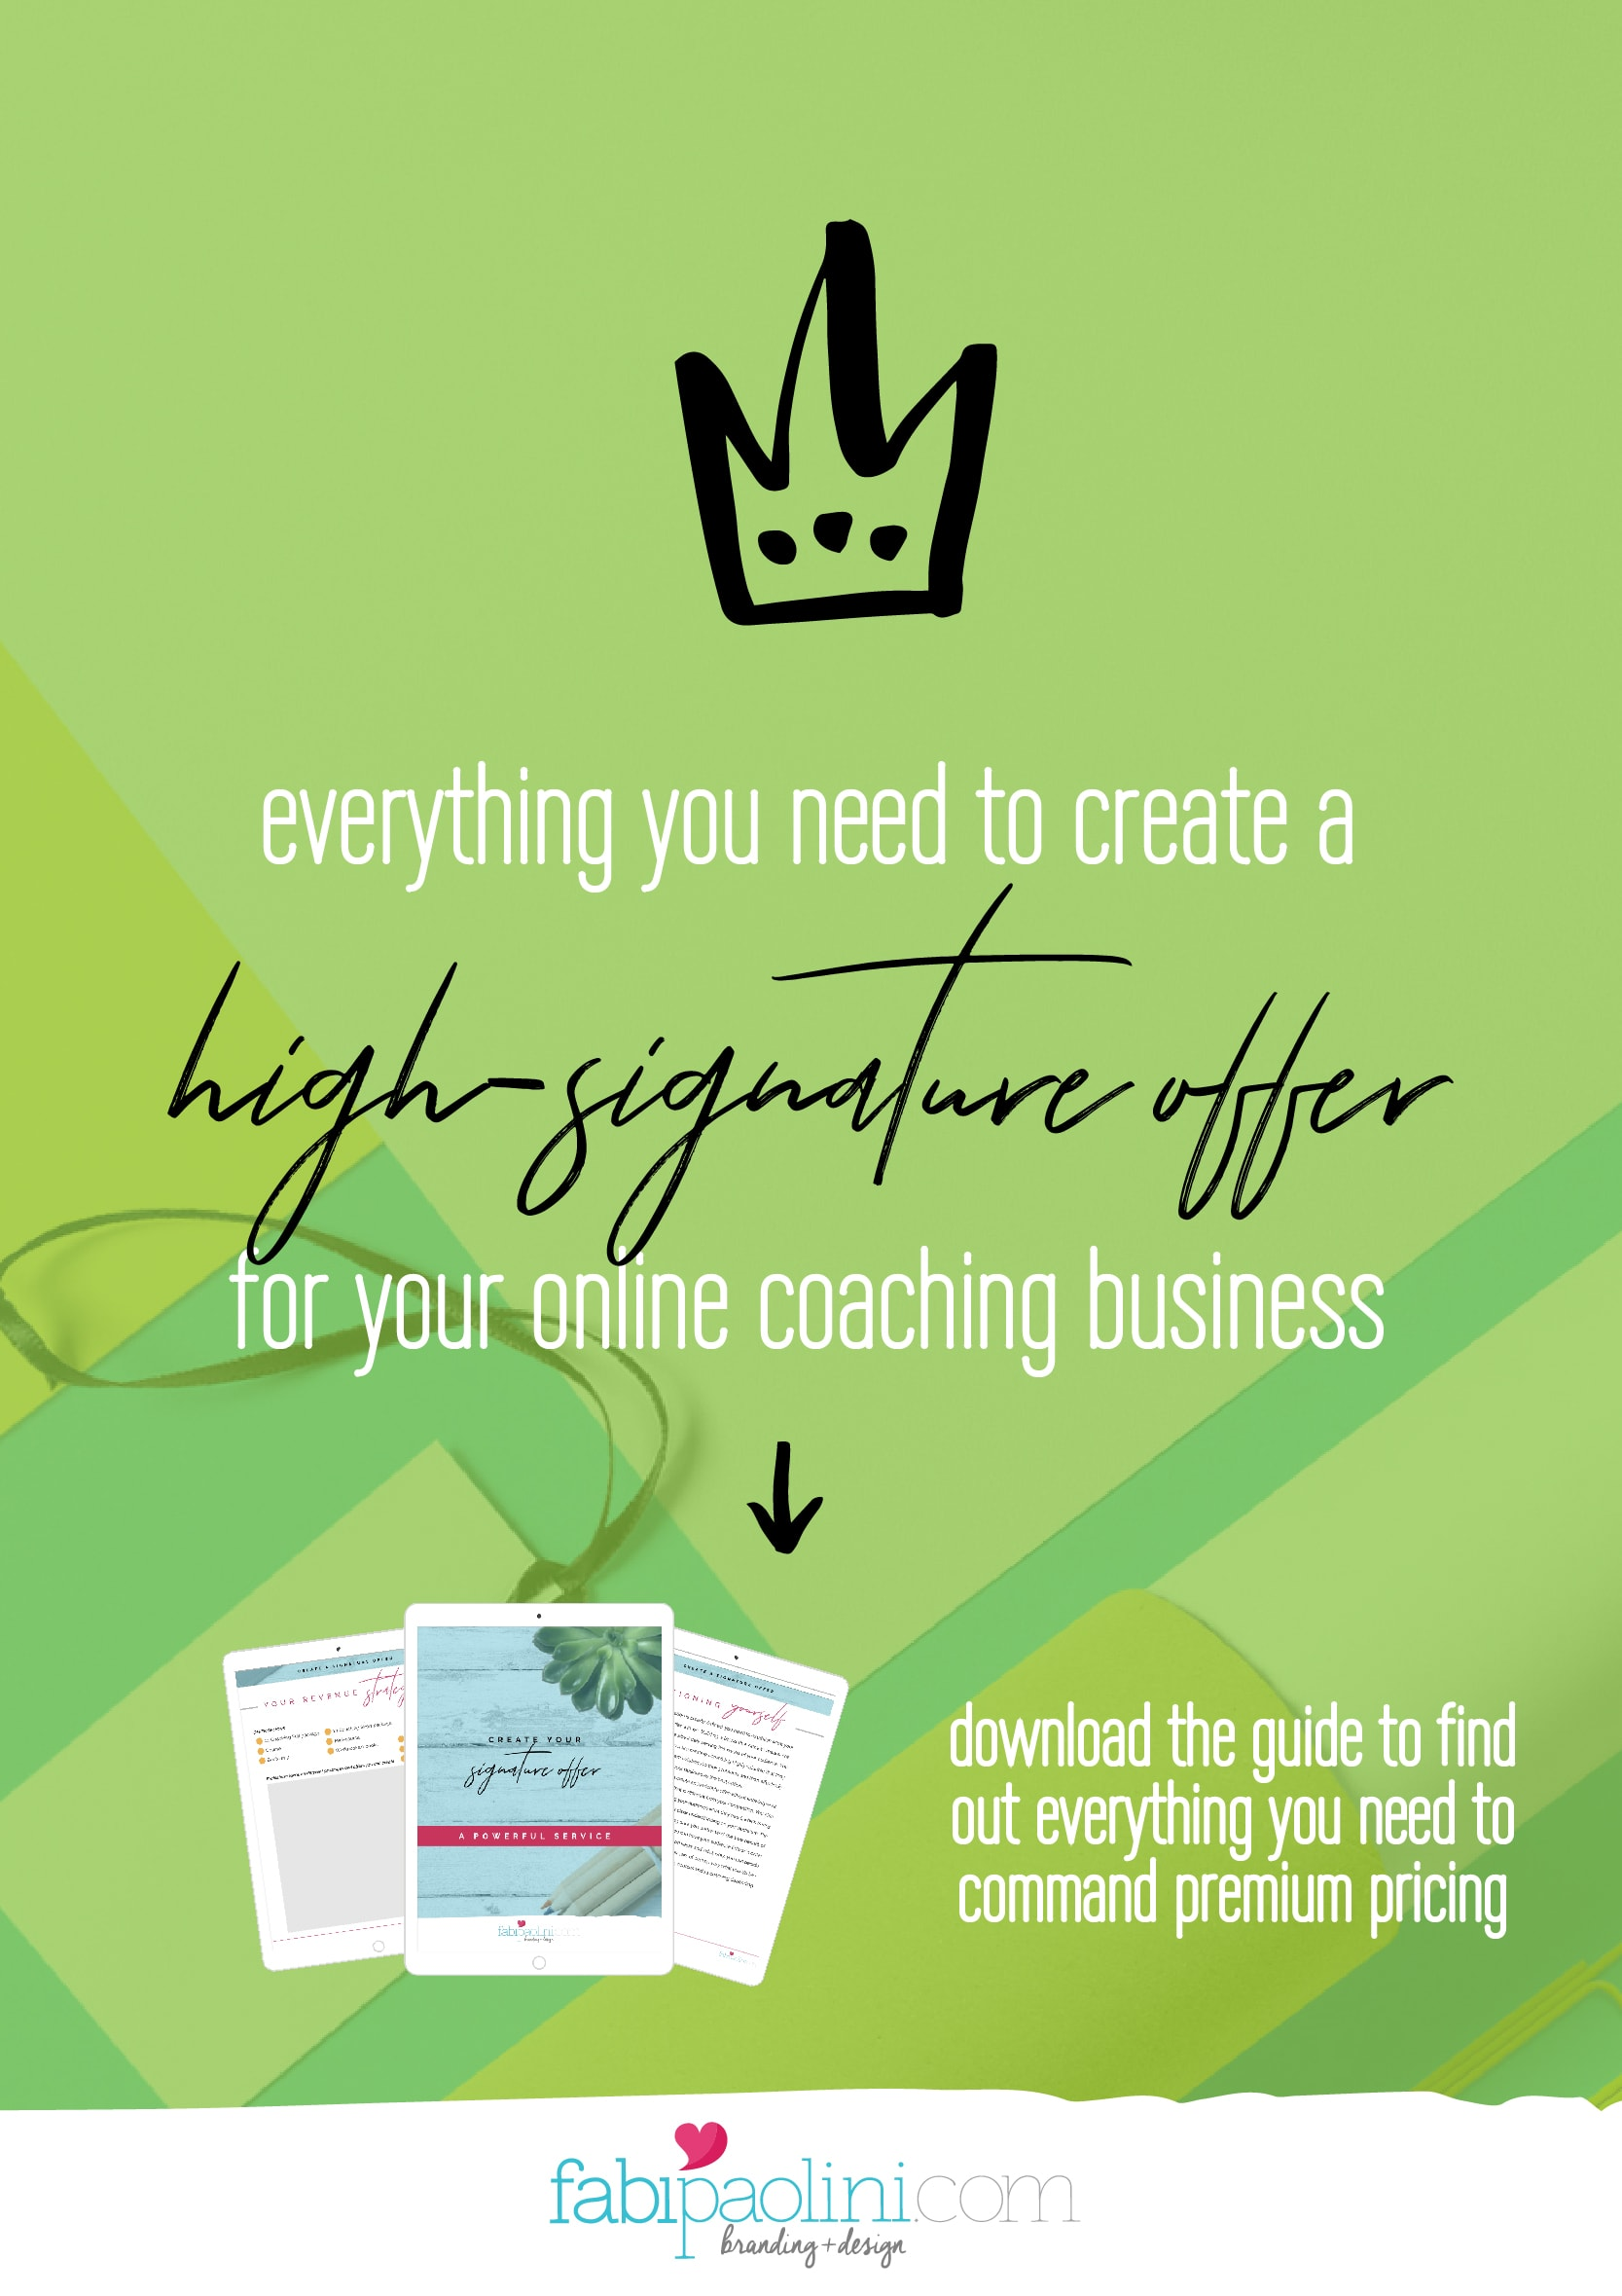 Everything you need to create a high-ticket signature offer for your online based service business while increasing your income | Fabi Paolini Brand Strategy Online Business Coach